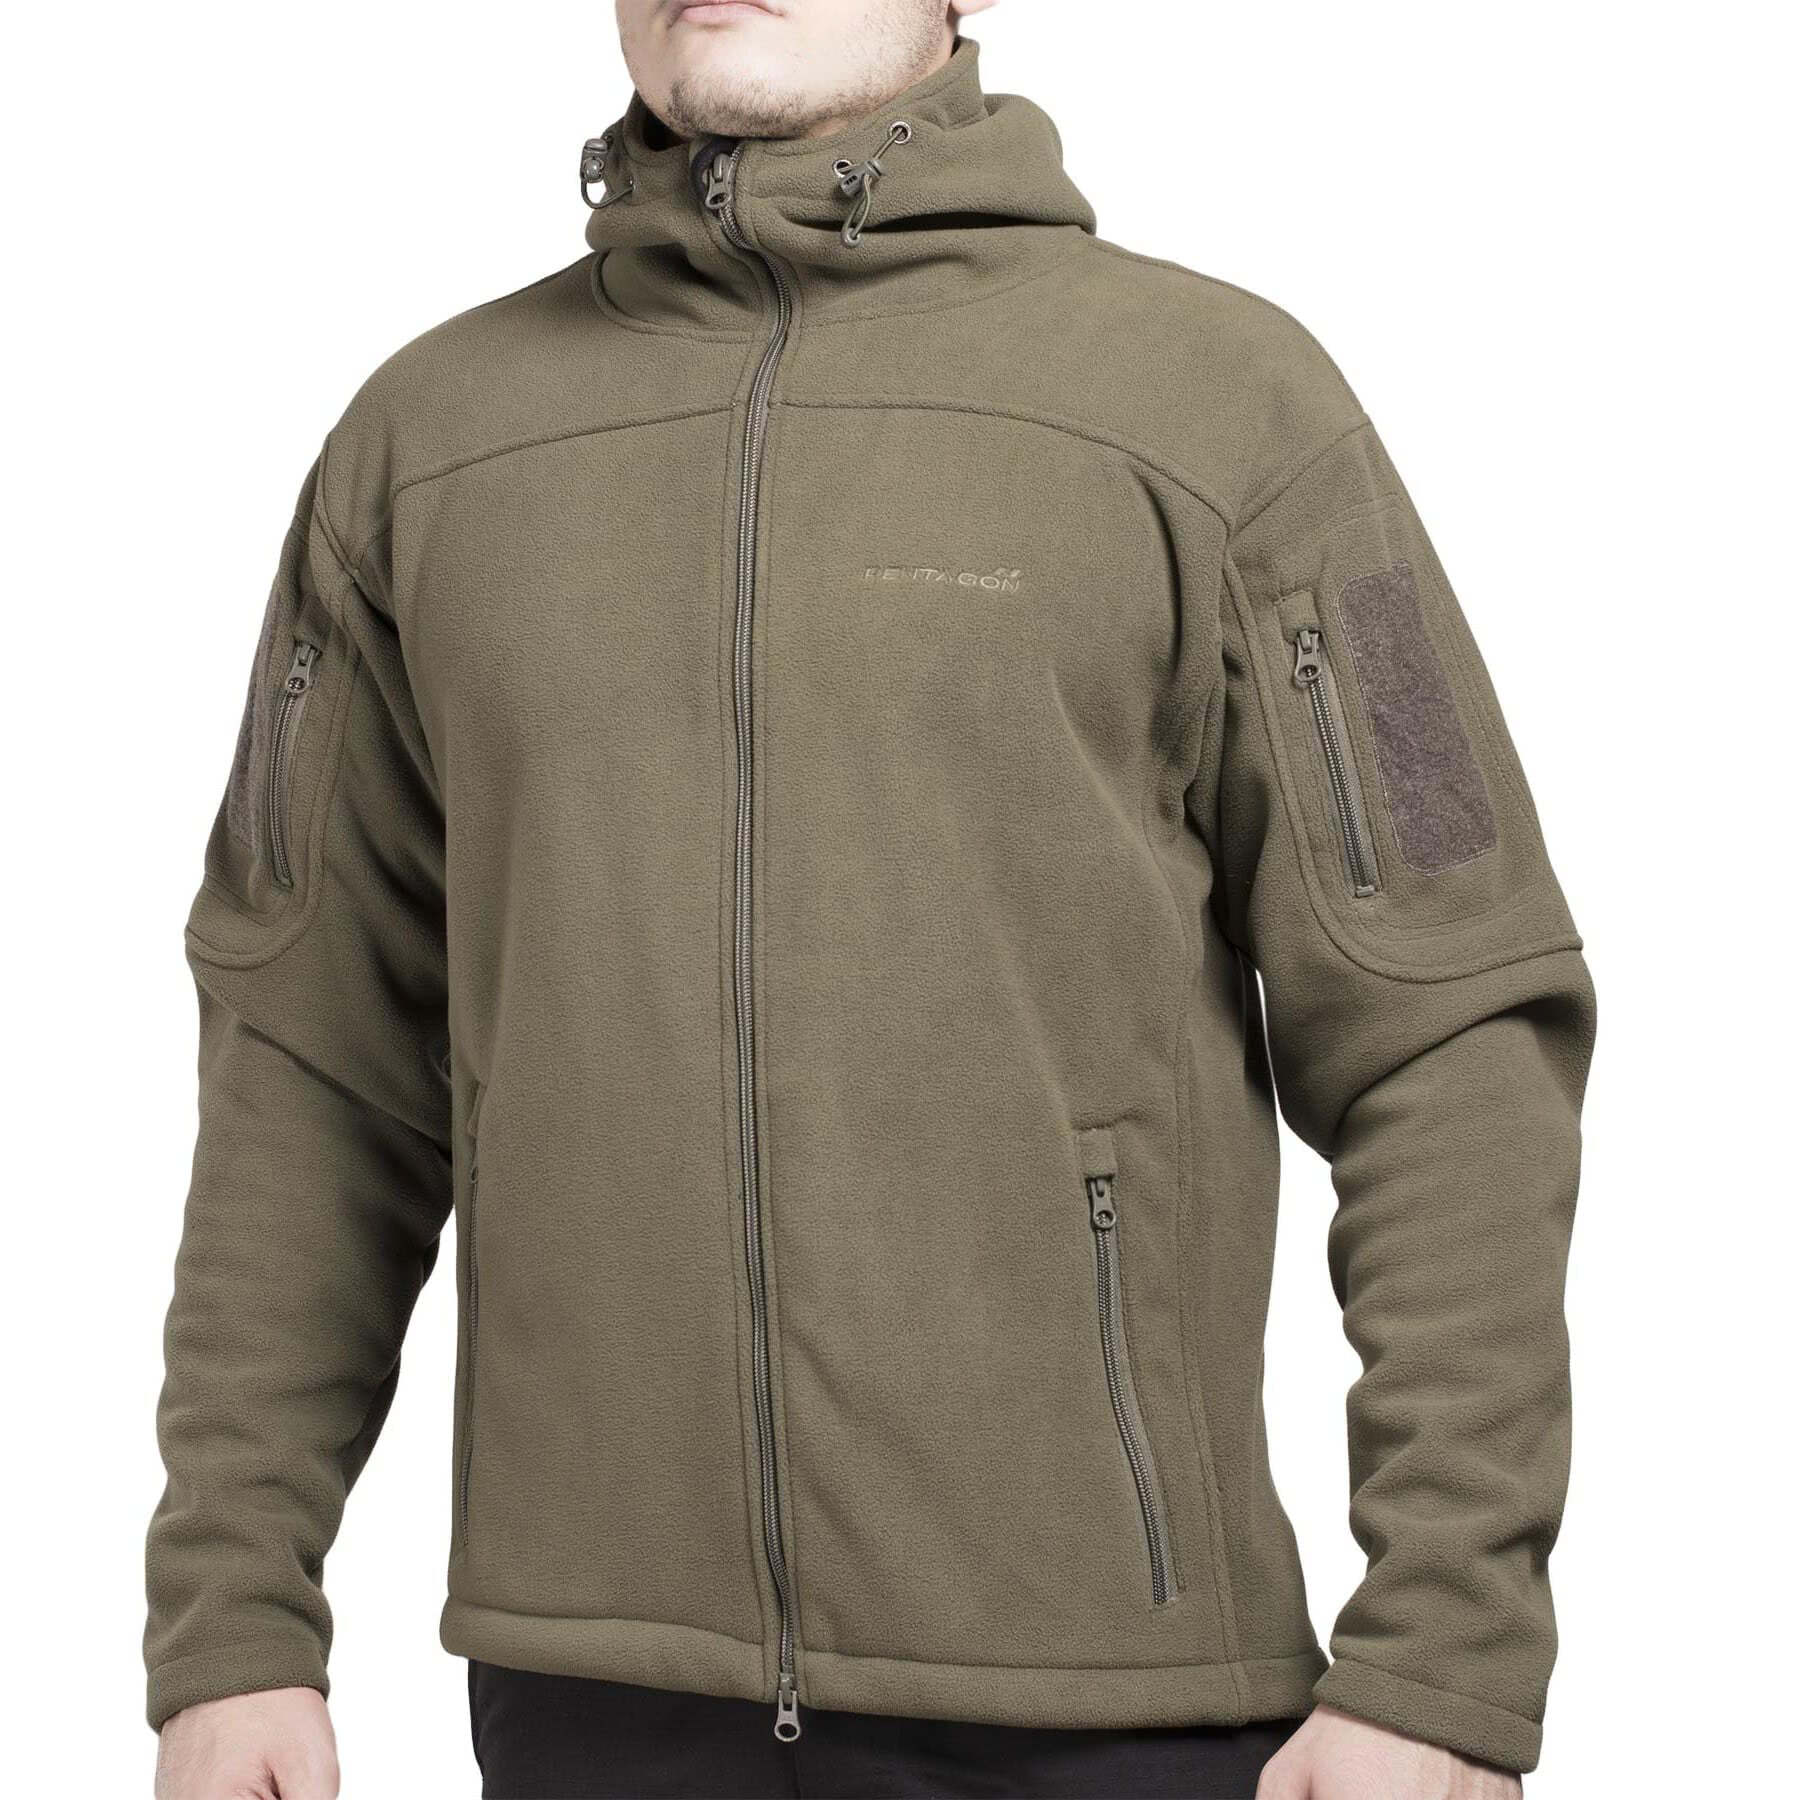 Куртка флисовая PENTAGON с капюшоном Hercules Fleece Jacket 2.0